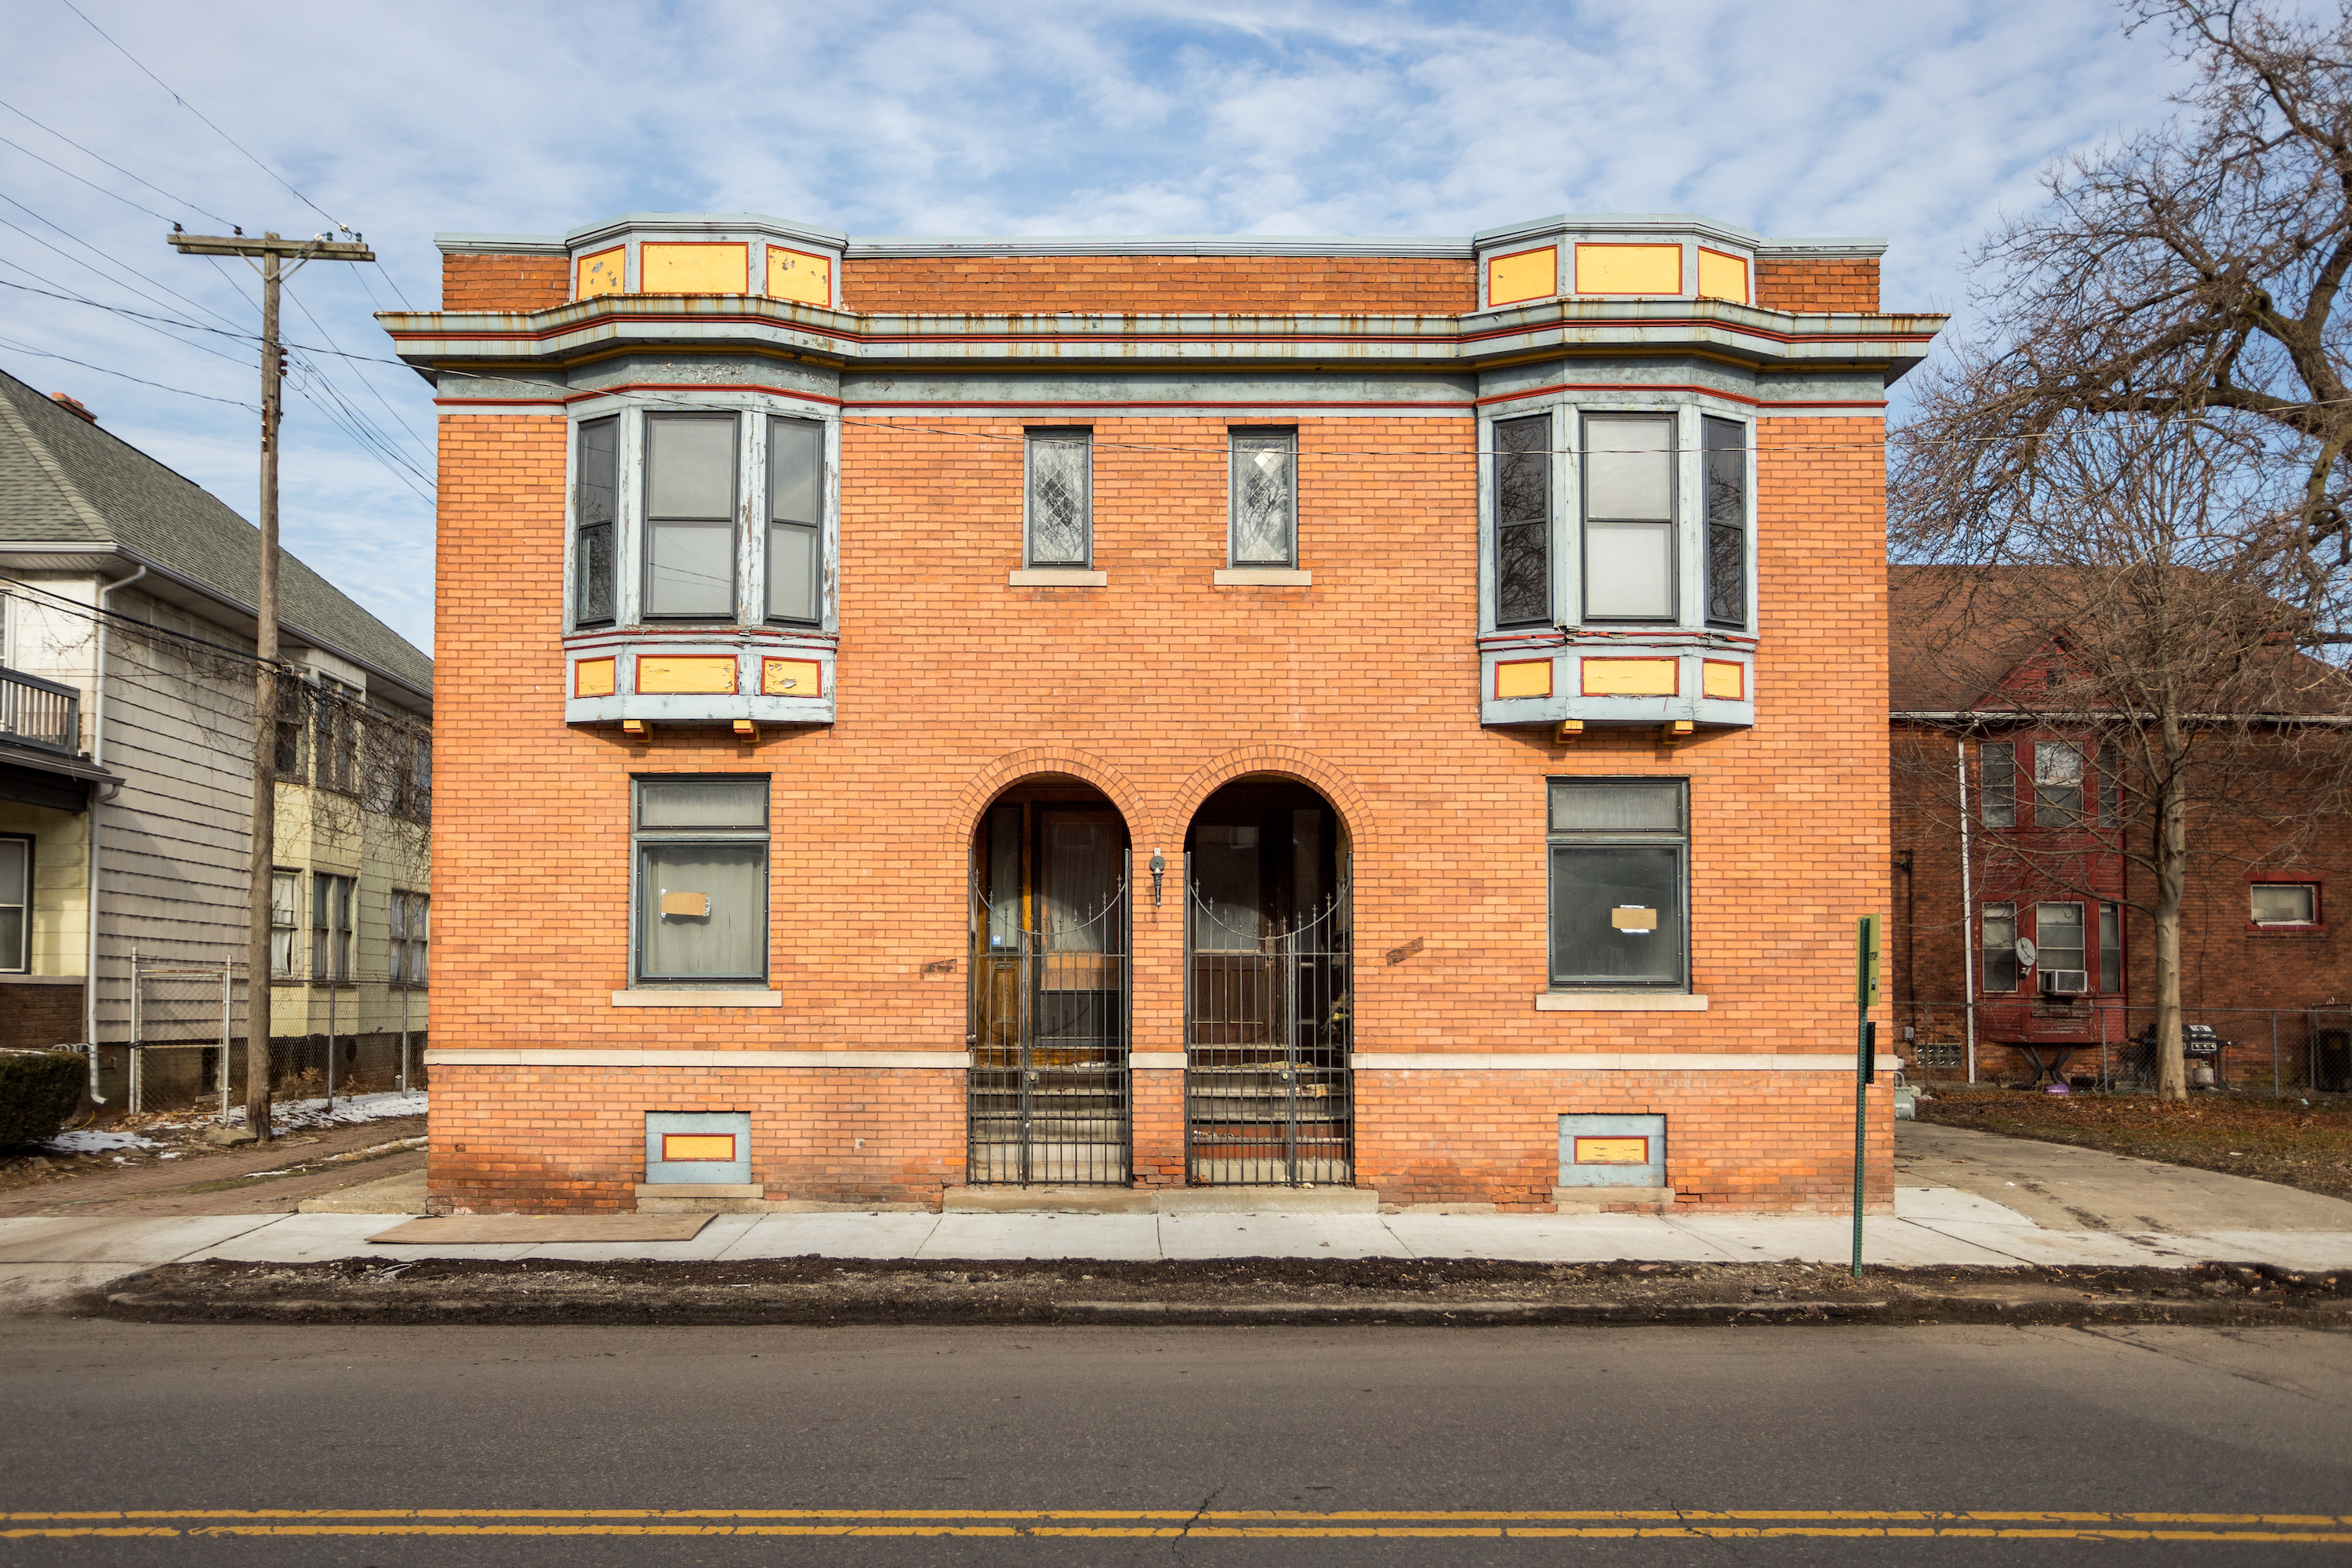 A square two-story brick building with arched front entrances in the middle.